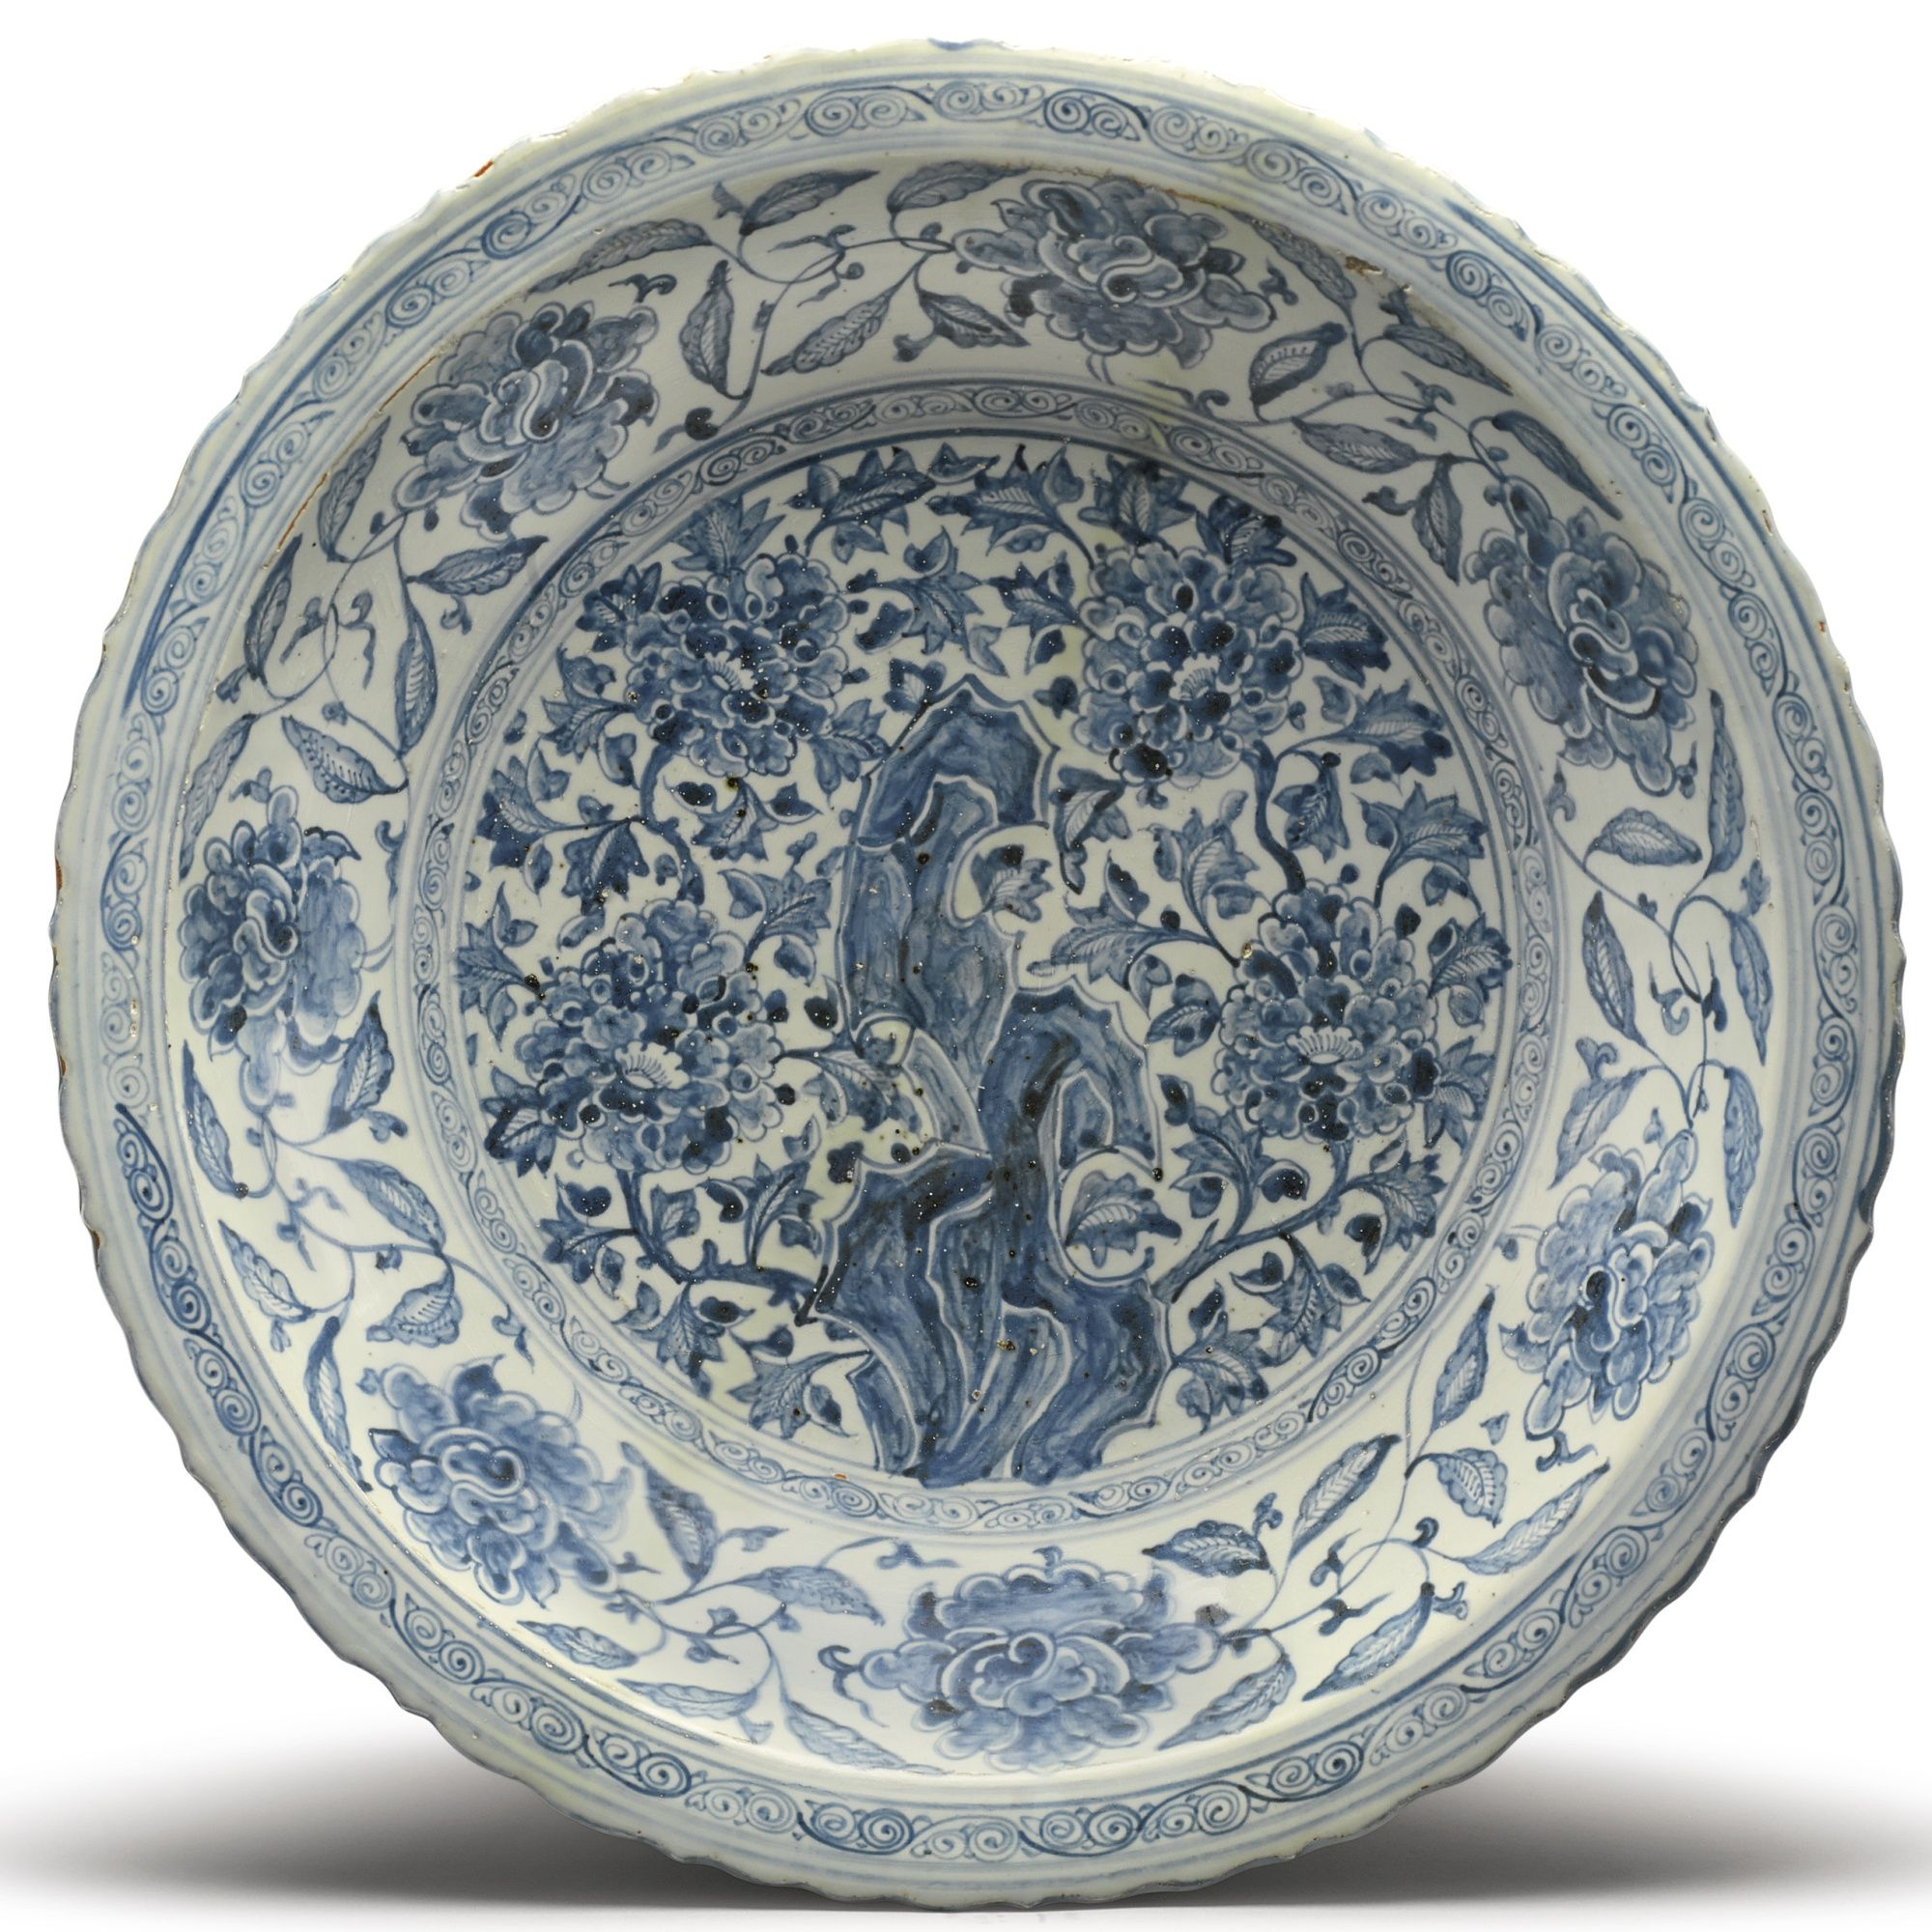 A LARGE BARBED-RIM BLUE AND WHITE 'PEONY' DISH | MING DYNASTY 15TH / 16TH CENTURY  |  Sotheby's